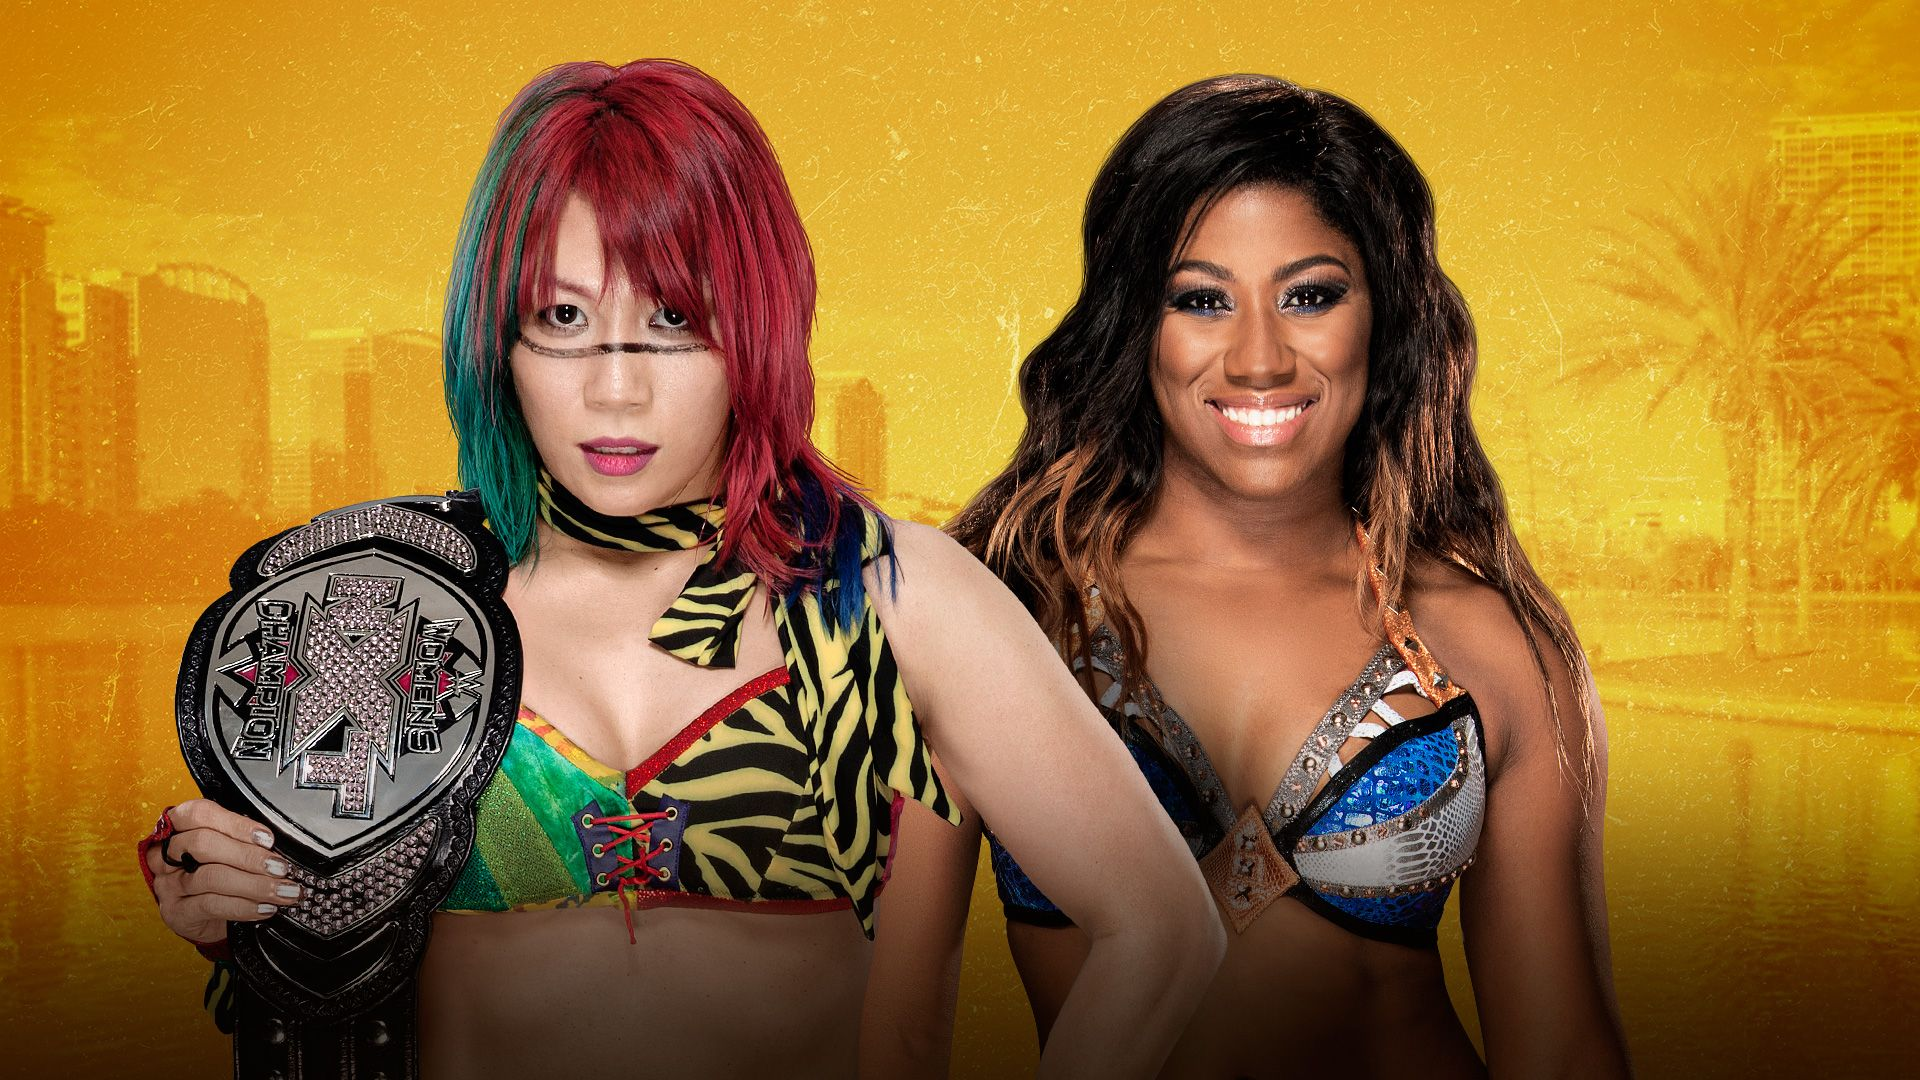 Asuka And Ember Moon Signed Their Nxt Takeover Orlando Women S Championship Match Contract Nxt Takeover Women S Wrestling Nxt Women S Championship